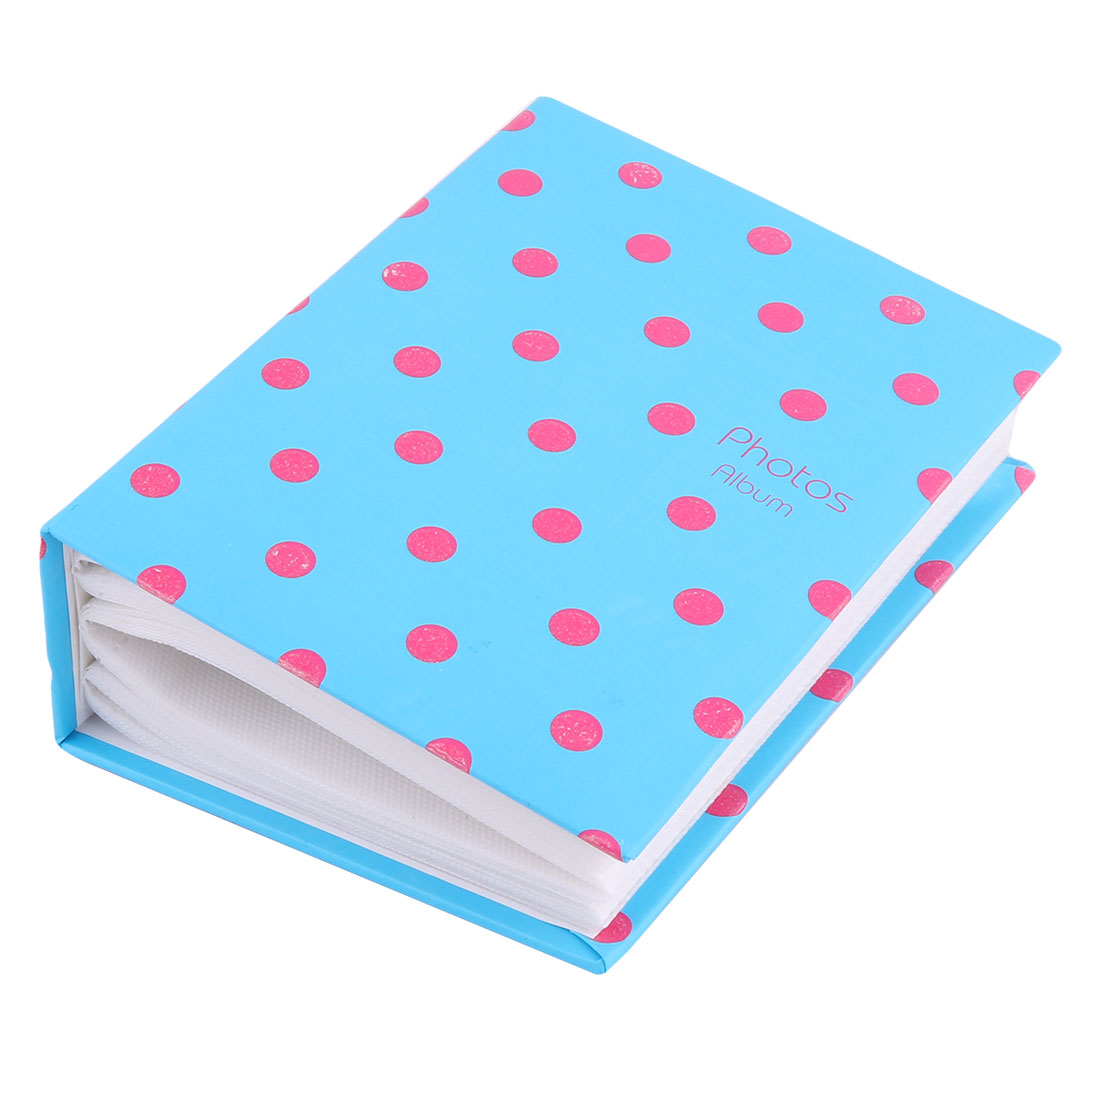 Home Cardboard Dot Print Memory Book Picture Collection Photo Album Blue Fuchsia